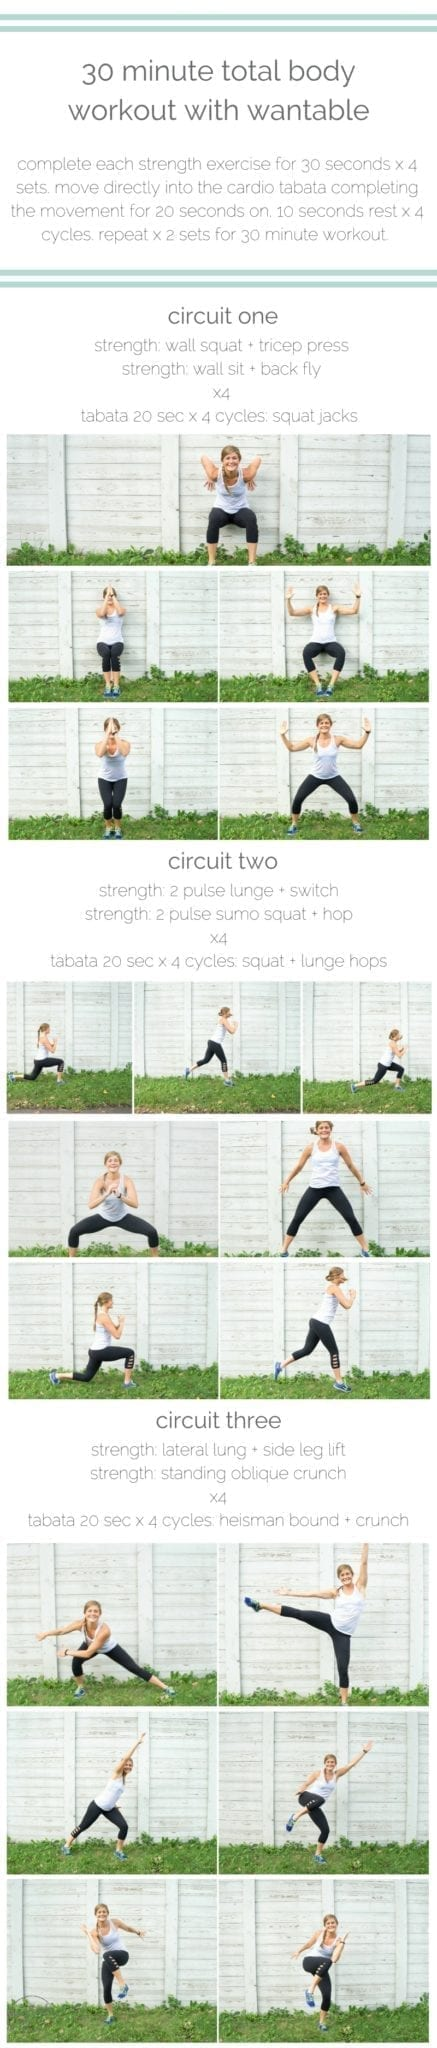 want that bod: 30 minute total body workout with wantable | tone your bod and look good doing it with this equipment-free, 30 minute strength-and-cardio circuit brought to you by wantable fitness. | www.nourishmovelove.com